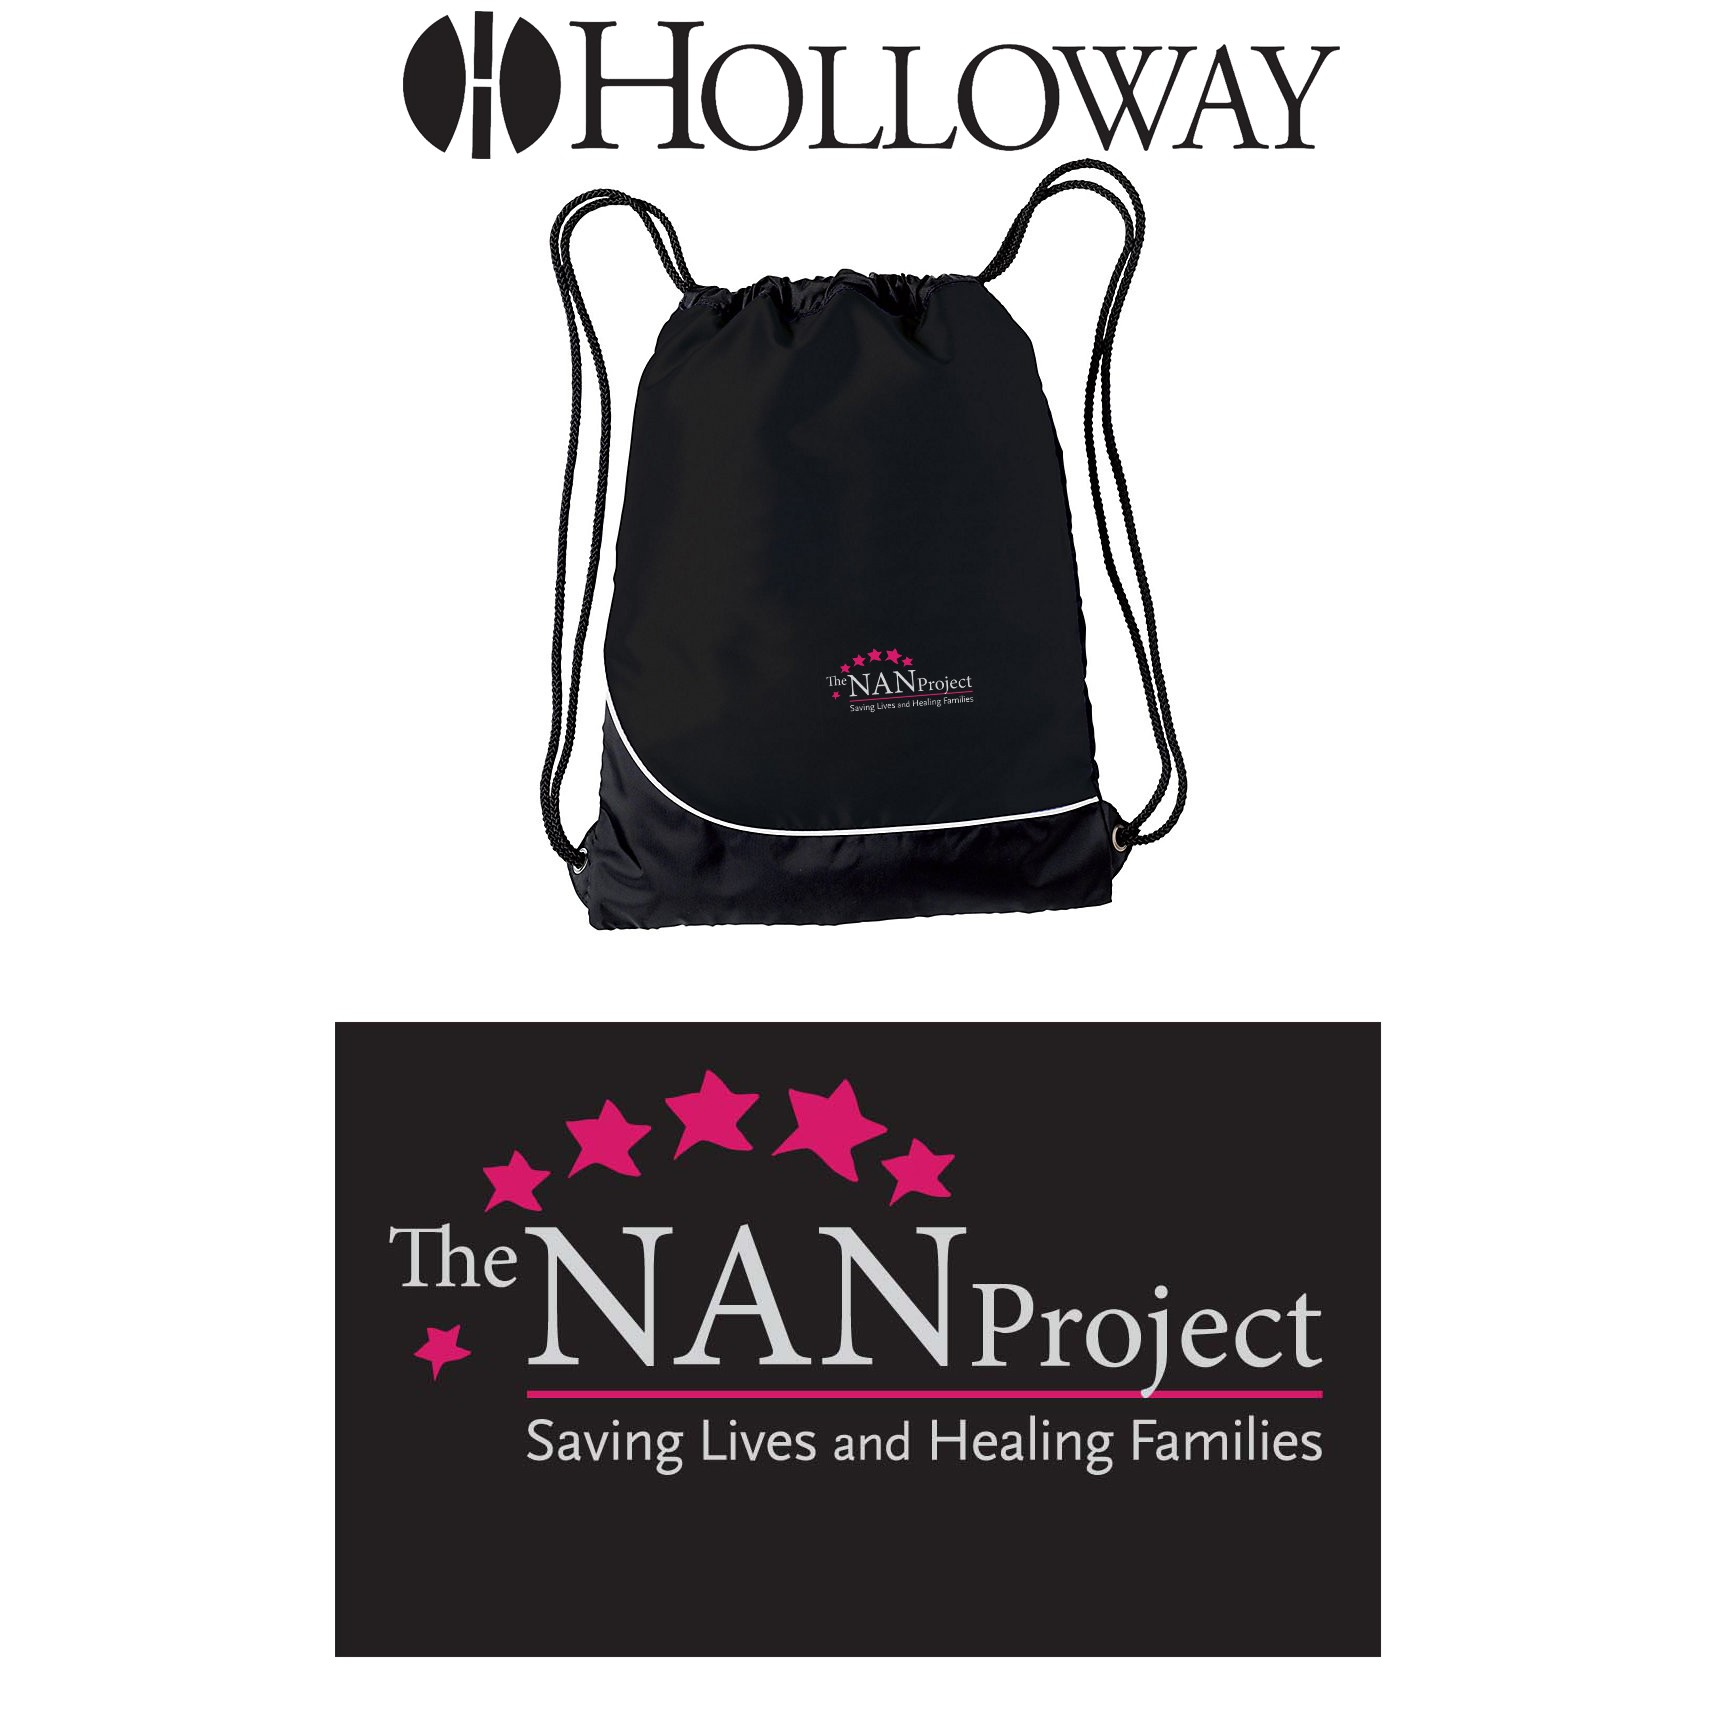 The NAN Project Holloway Day-Pak Bag